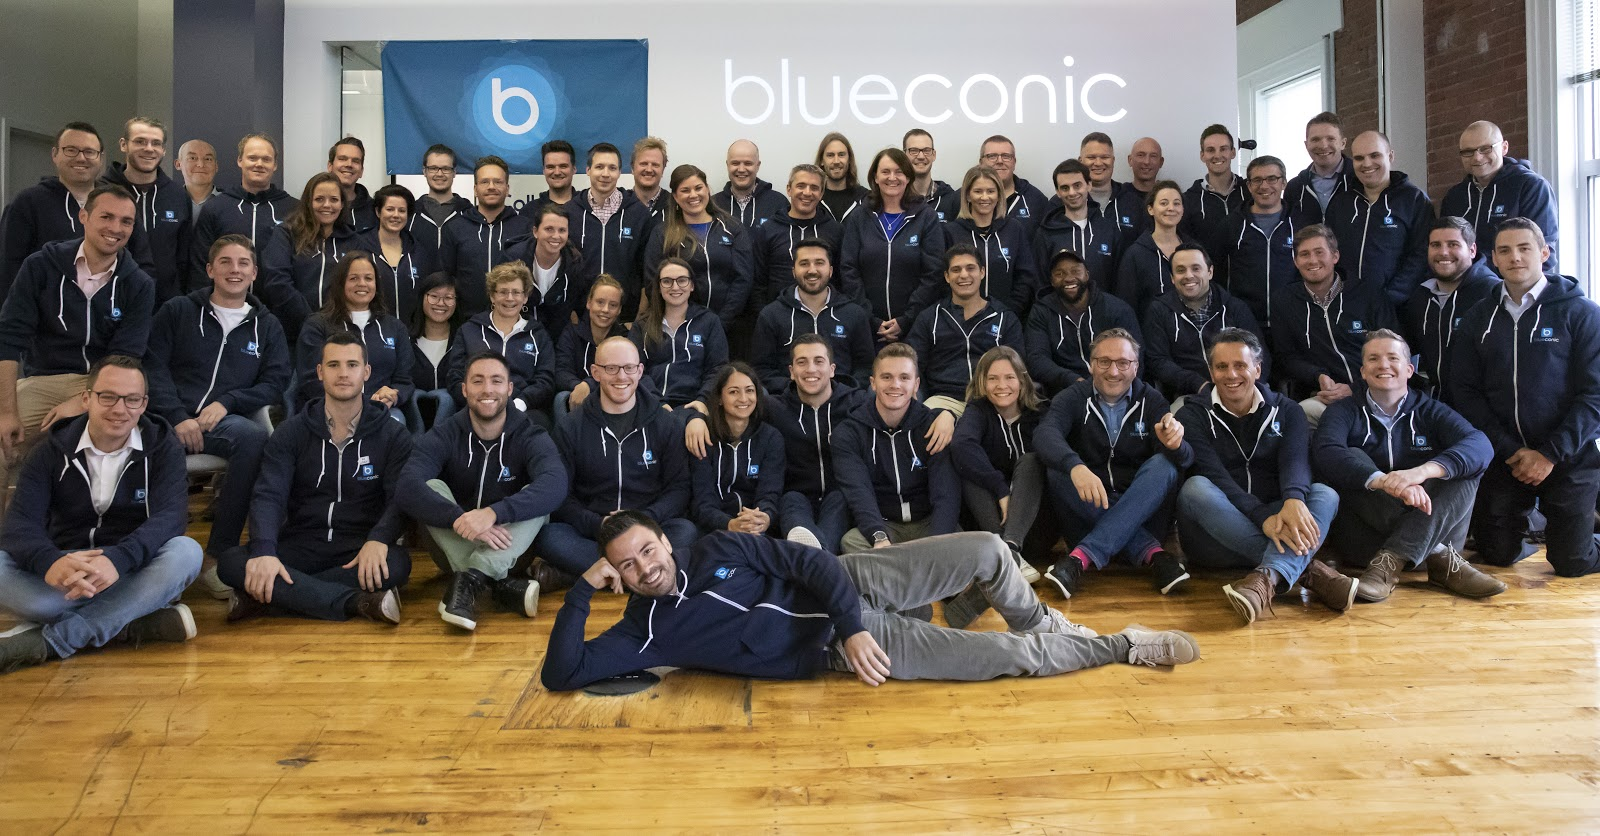 BlueConic's team gathers for a group photo at the office.